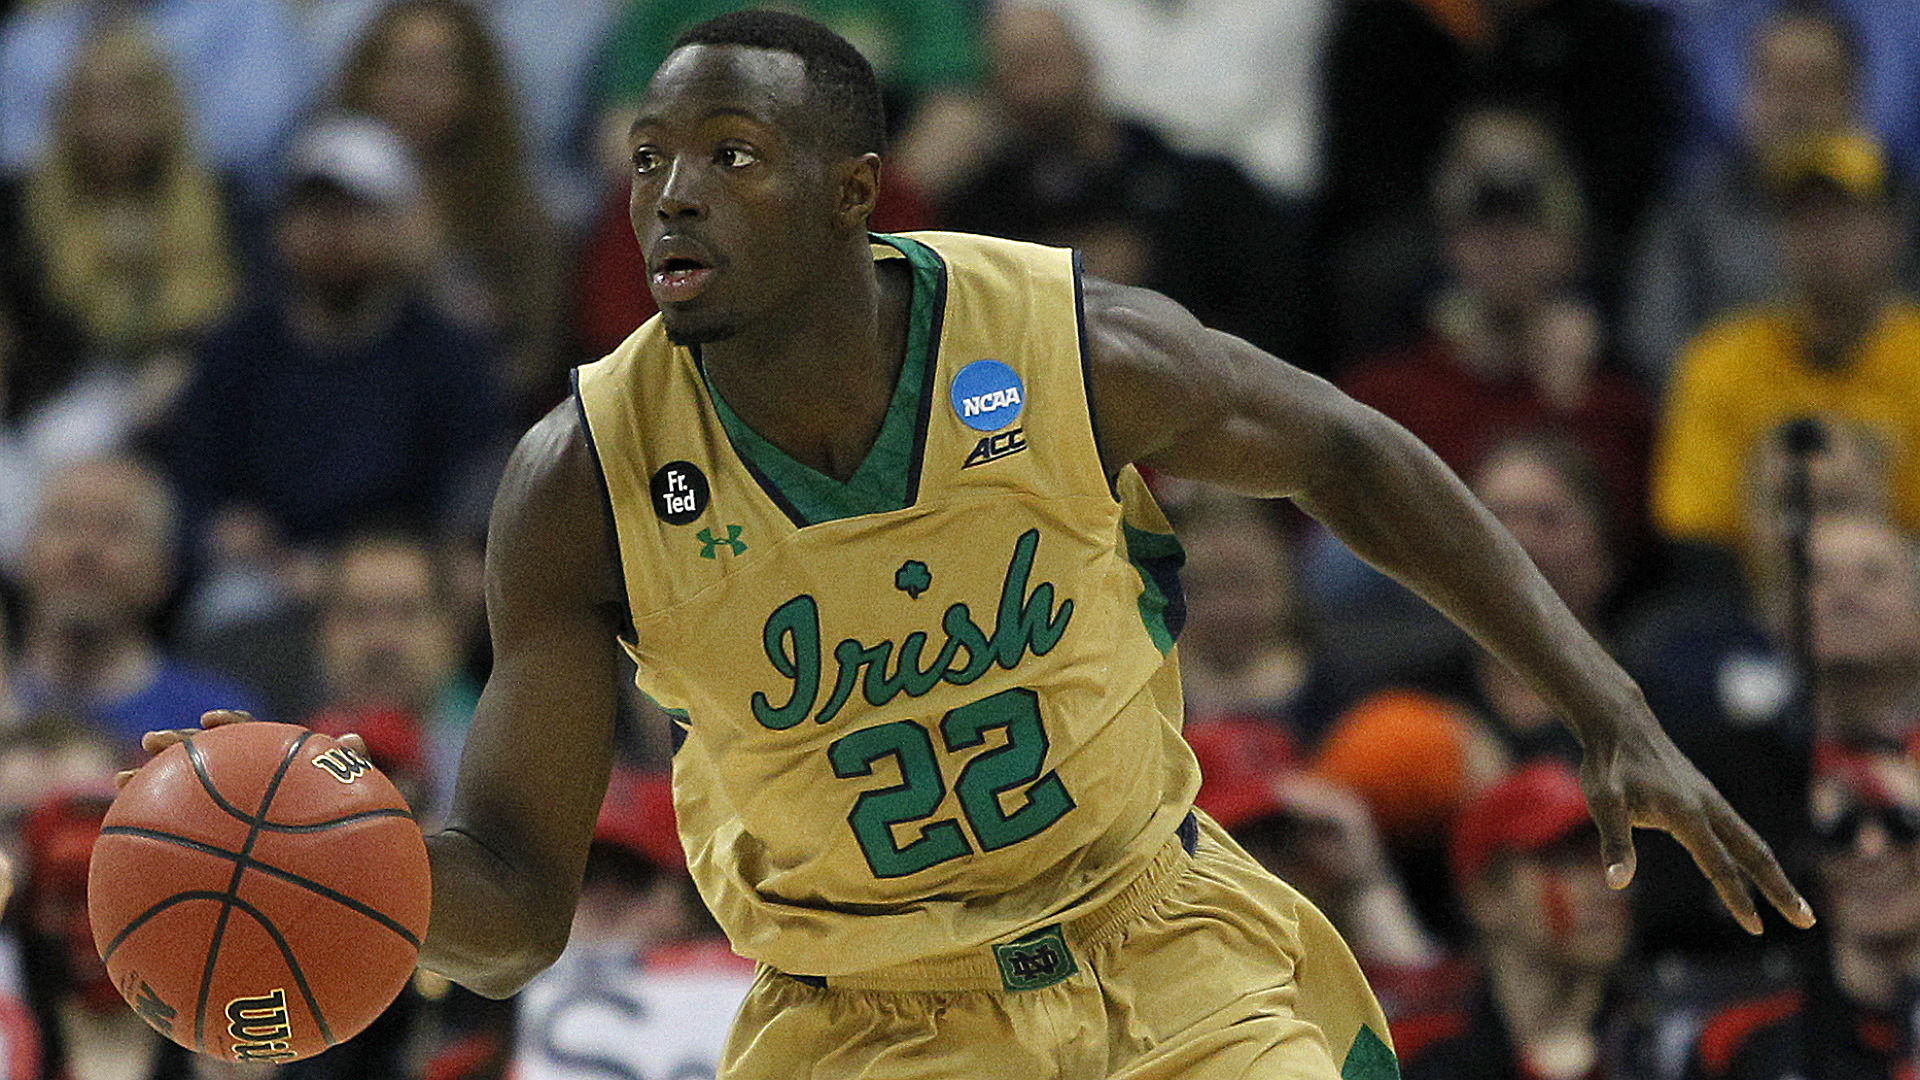 Notre Dame vs. Kentucky betting line and pick – Irish offense can succeed against Wildcats